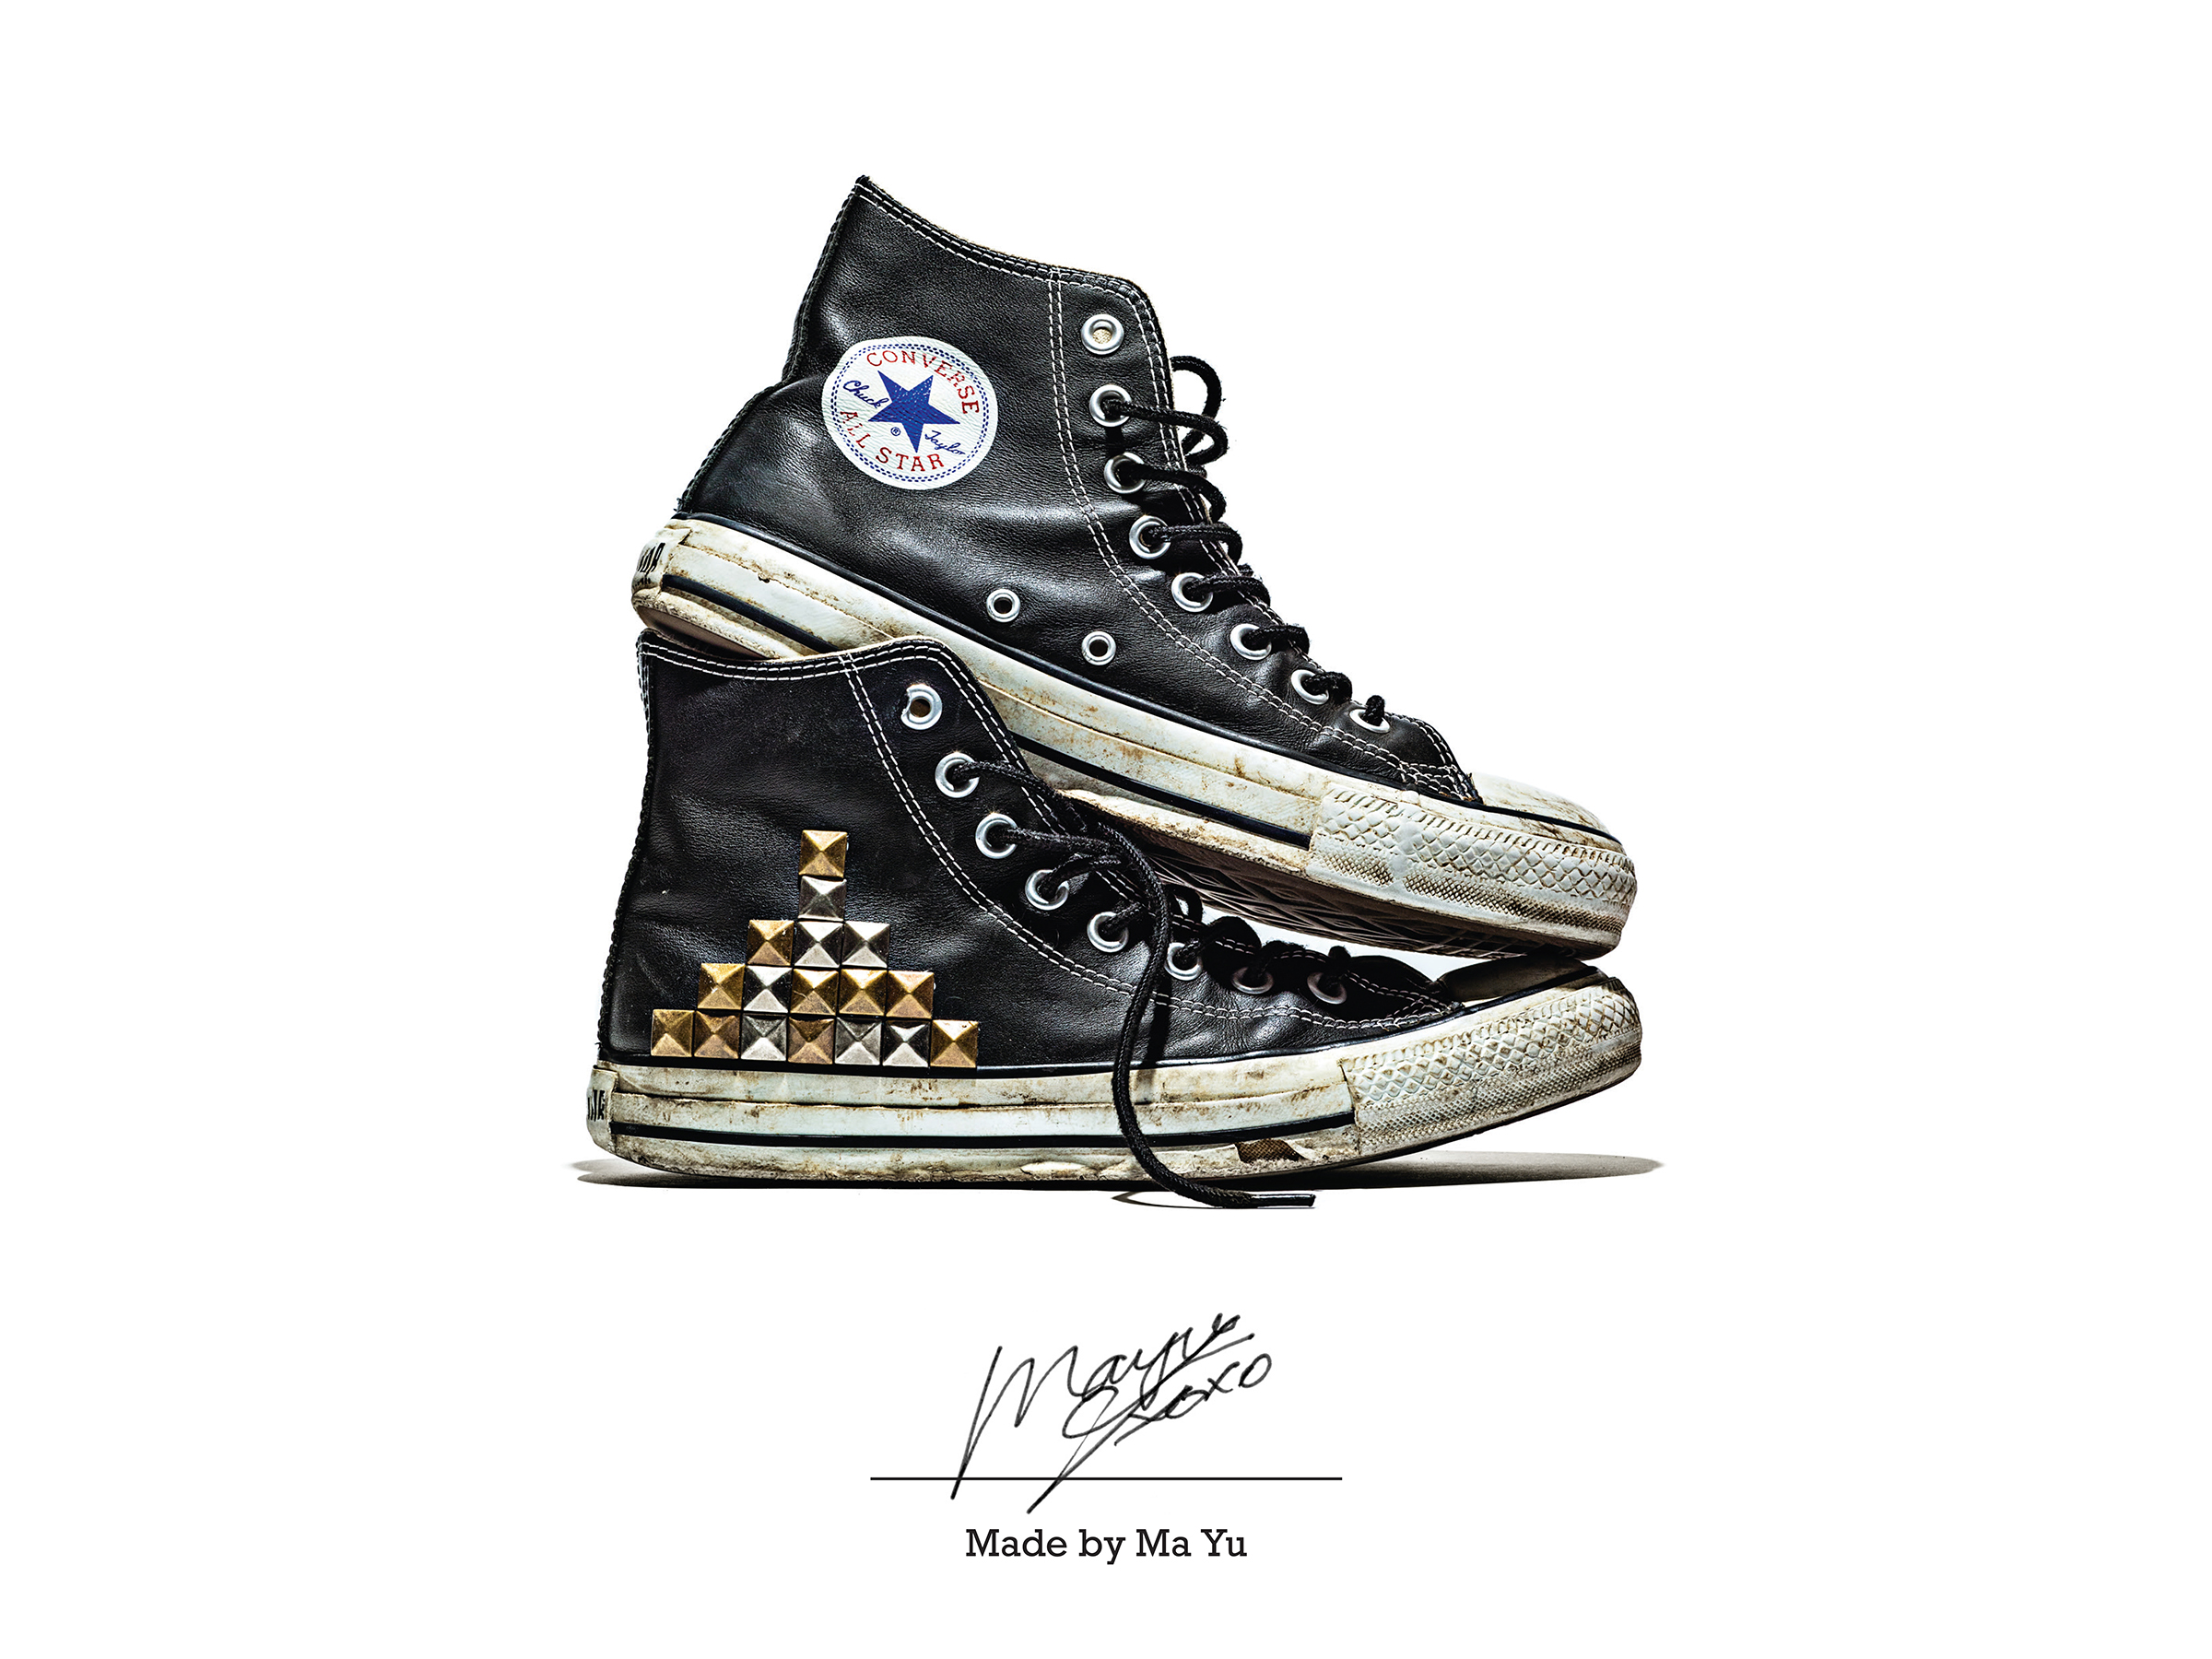 f521b87d1511 Converse Made by You - The Inspiration Room